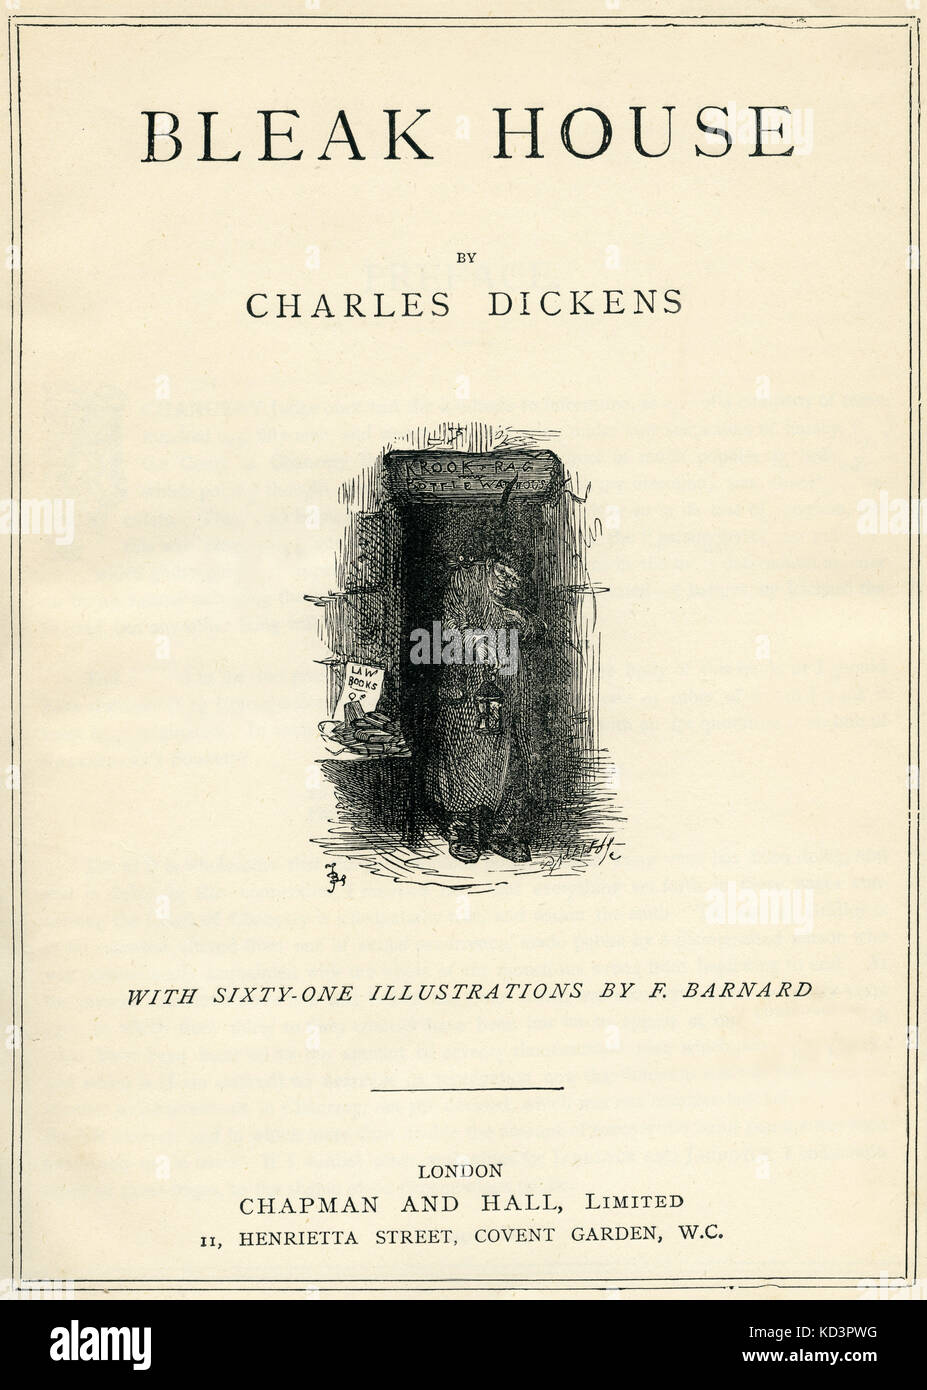 a biography of charles dickens the english novelist The life of charles dickens  besides making a prodigious contribution to english literature as a writer of fiction, he edited a weekly journal for twenty years .